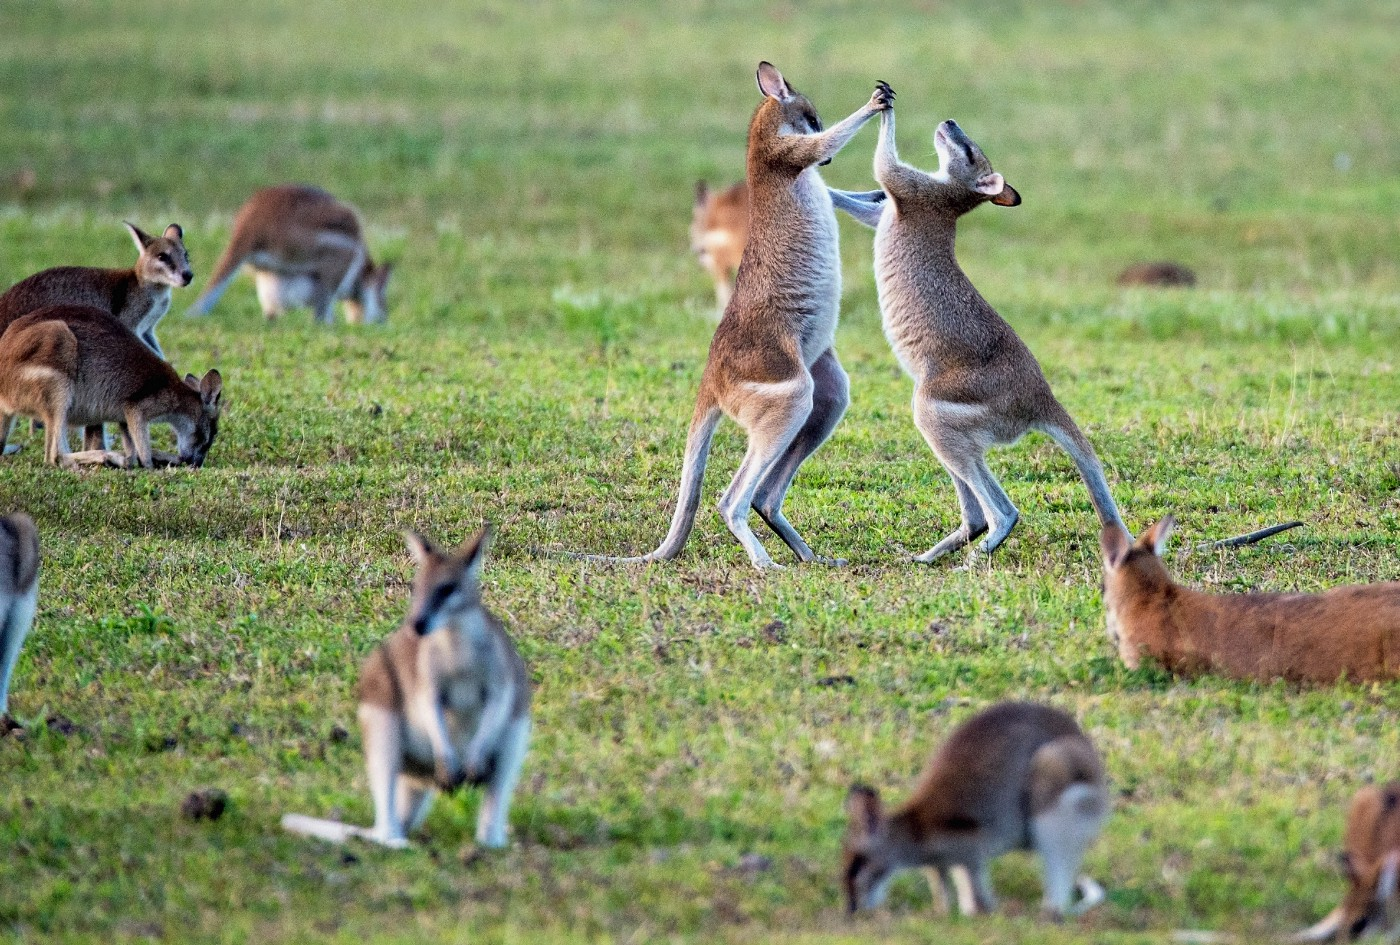 Two kangaroos dancing in the field. Photo by David Clode on Unsplash